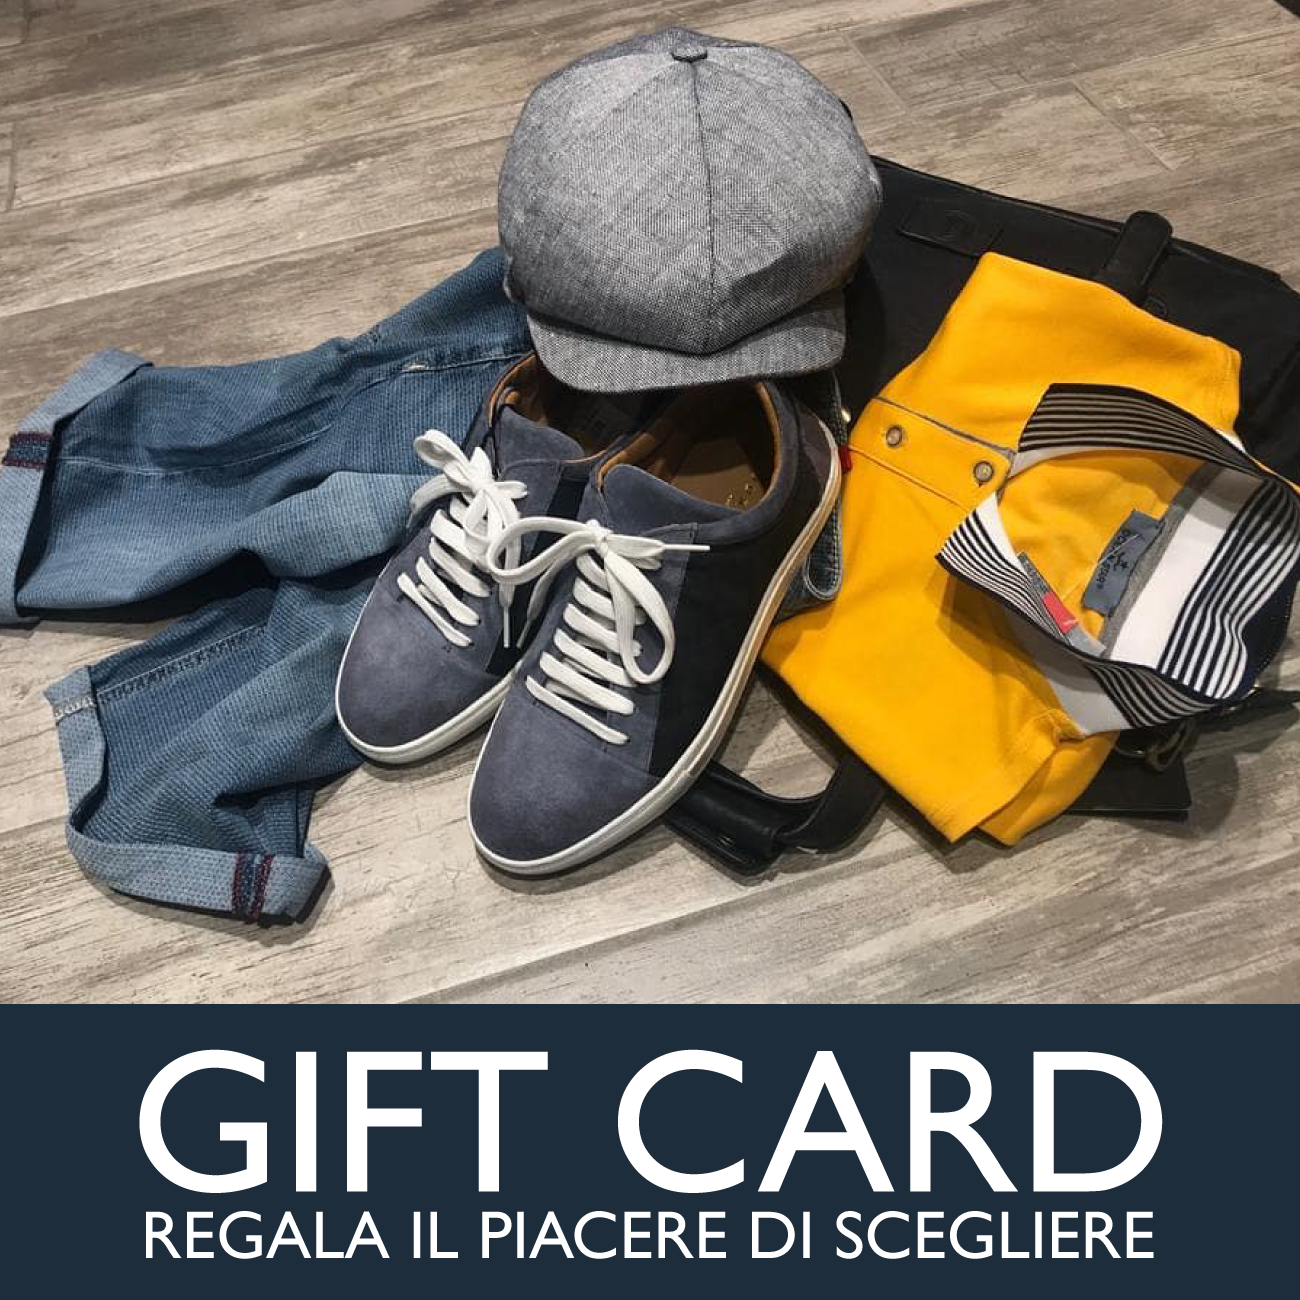 Compleanno in vista? Regala la Gift Card di B&C Fashion